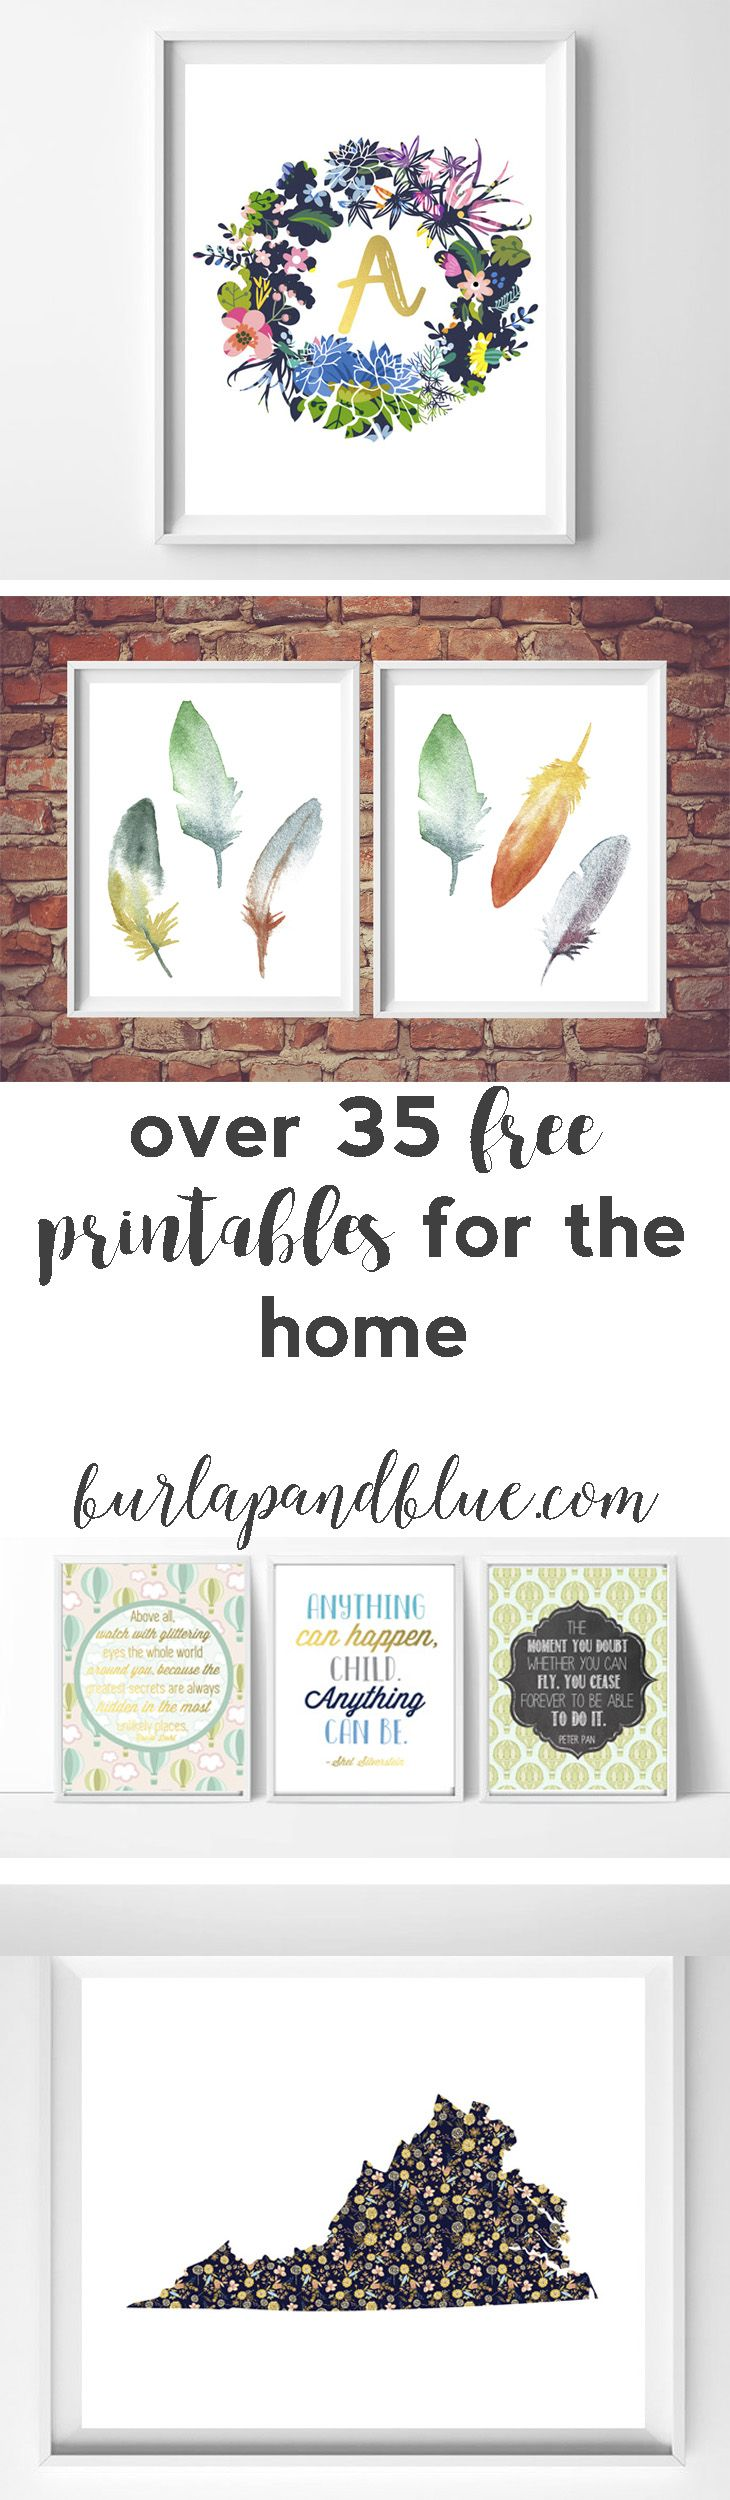 free printables for the home {over 35 printable favorites!}